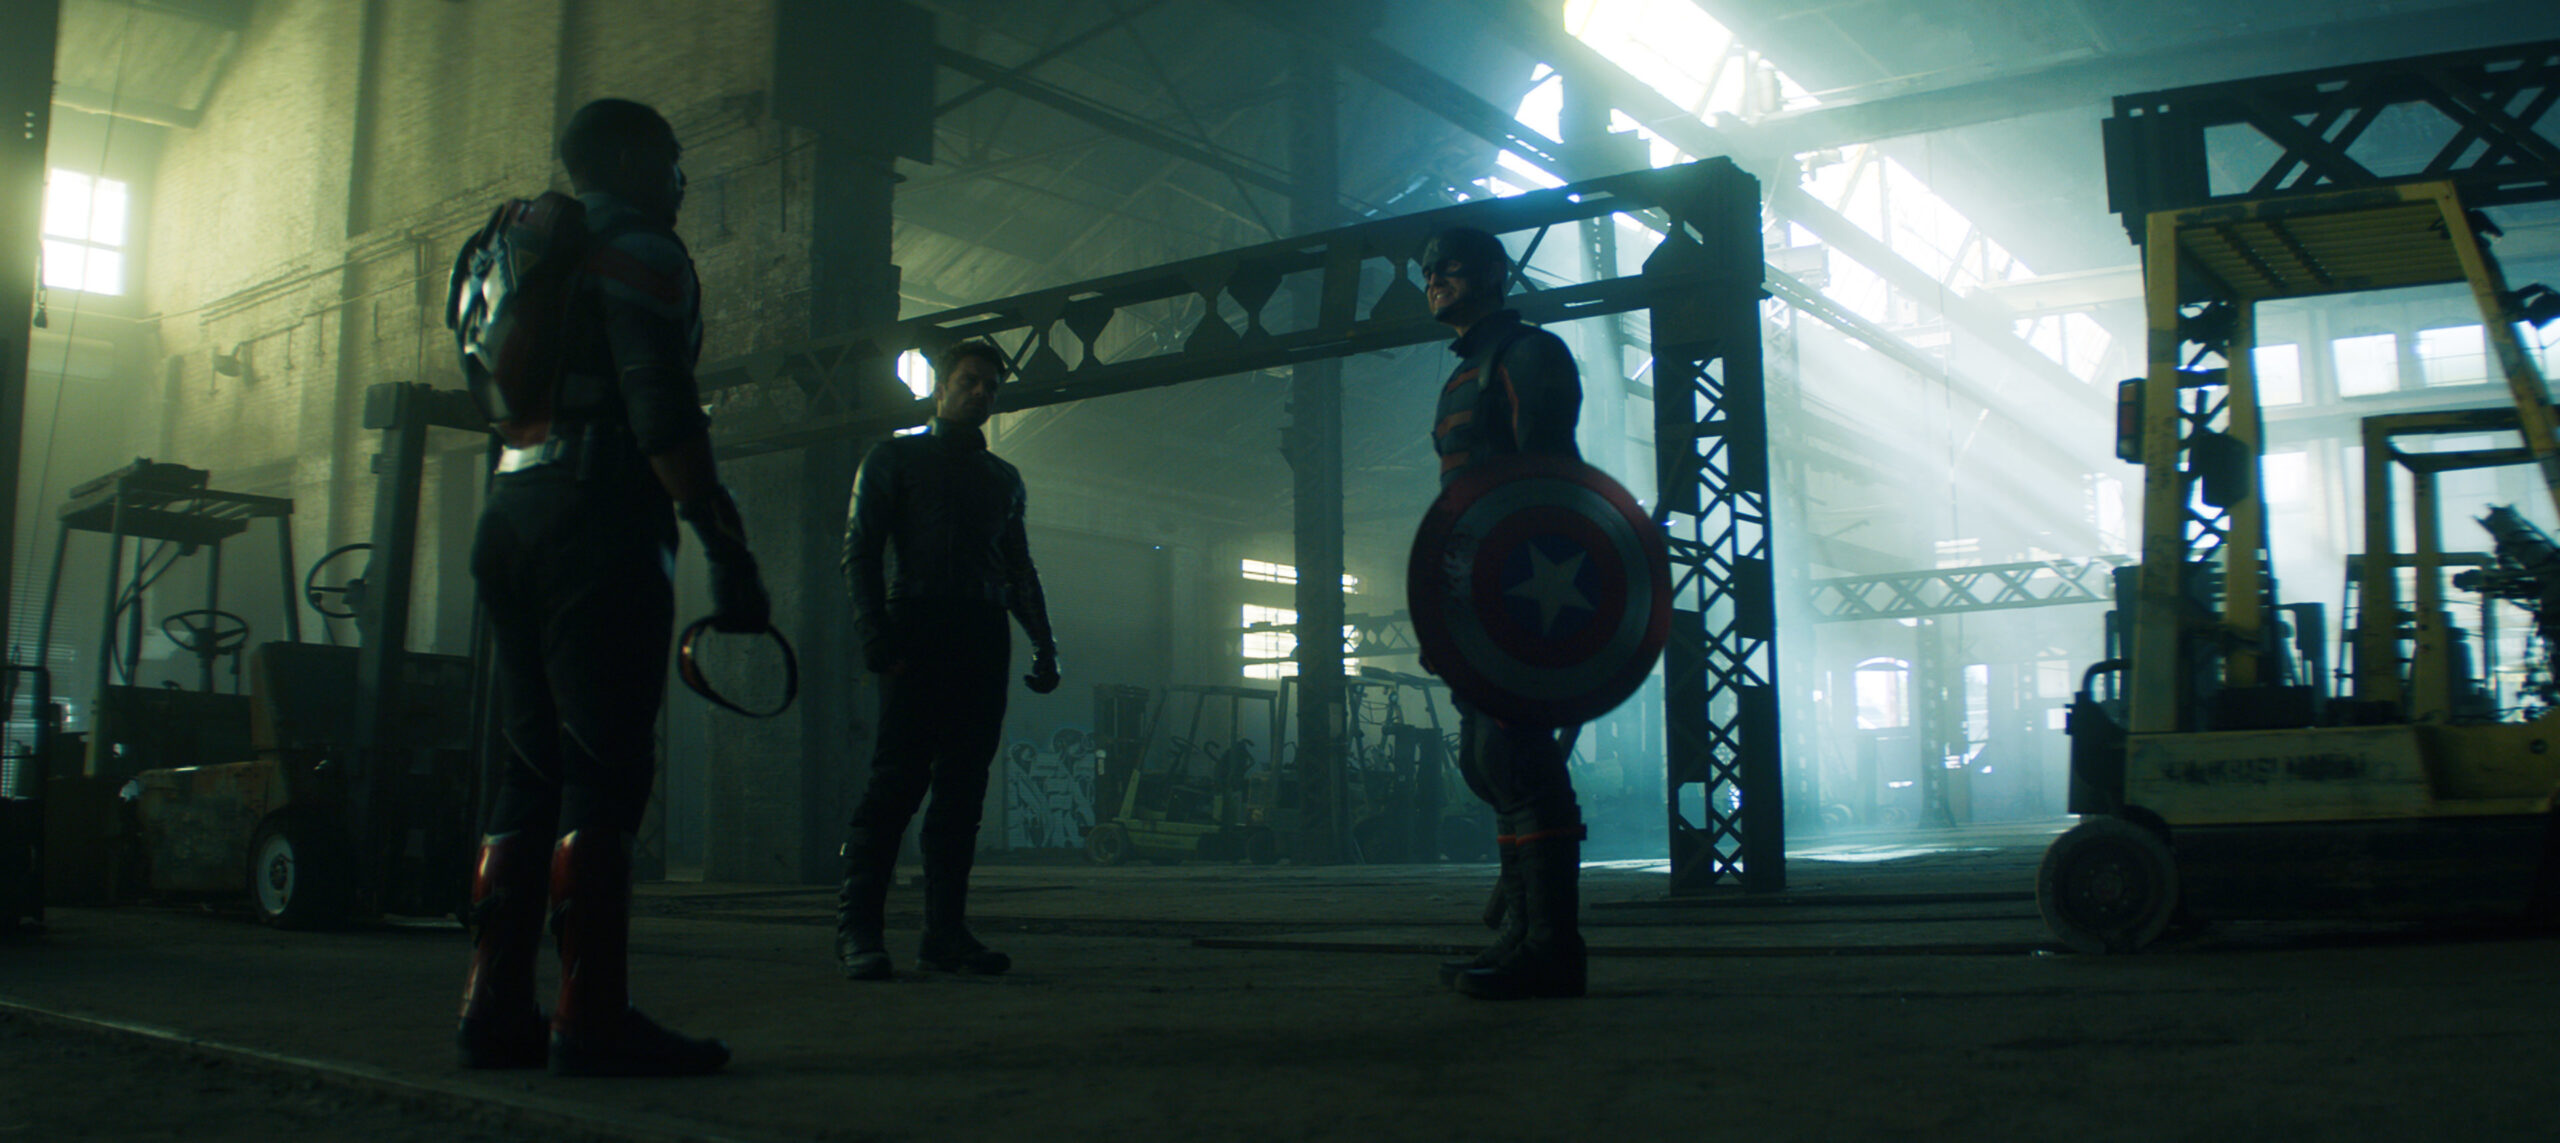 Sam, Bucky, and John Walker confront each other in a warehouse.